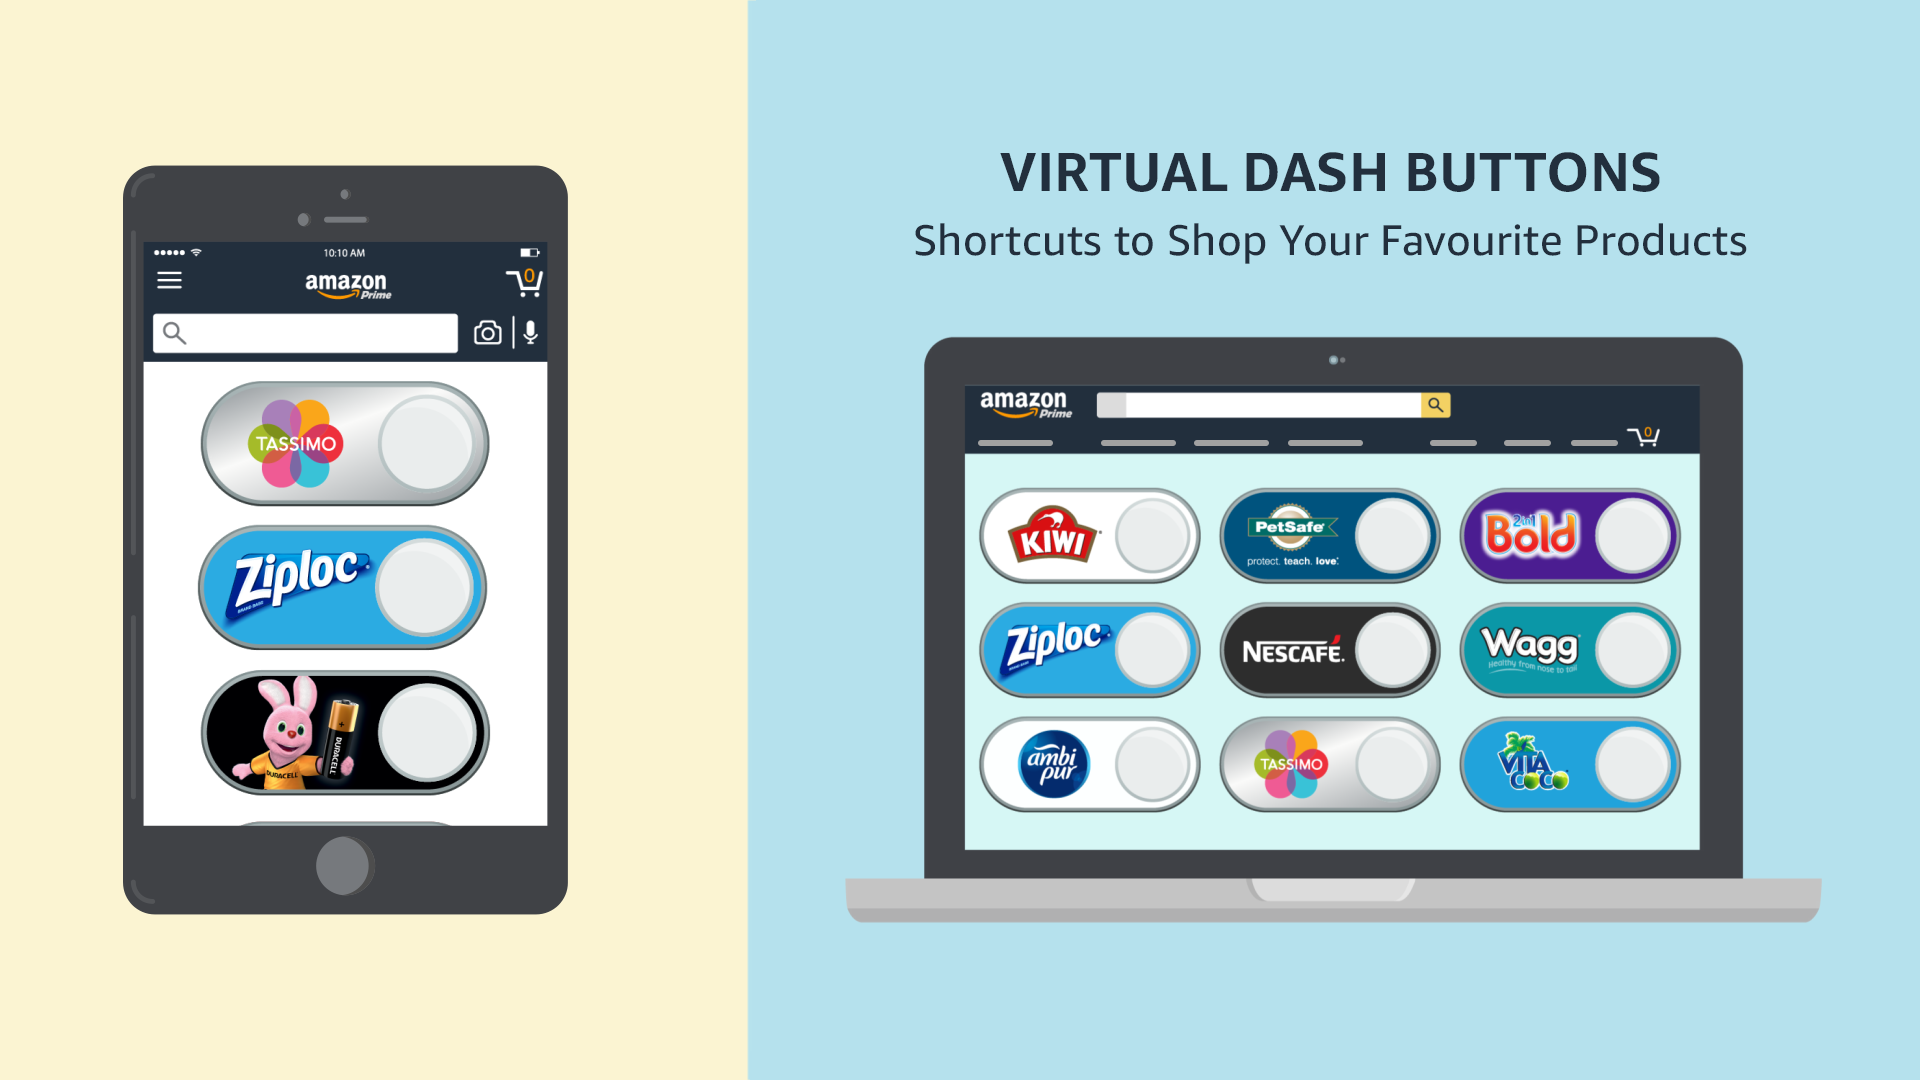 Learn more about Dash Buttons @ Amazon co uk